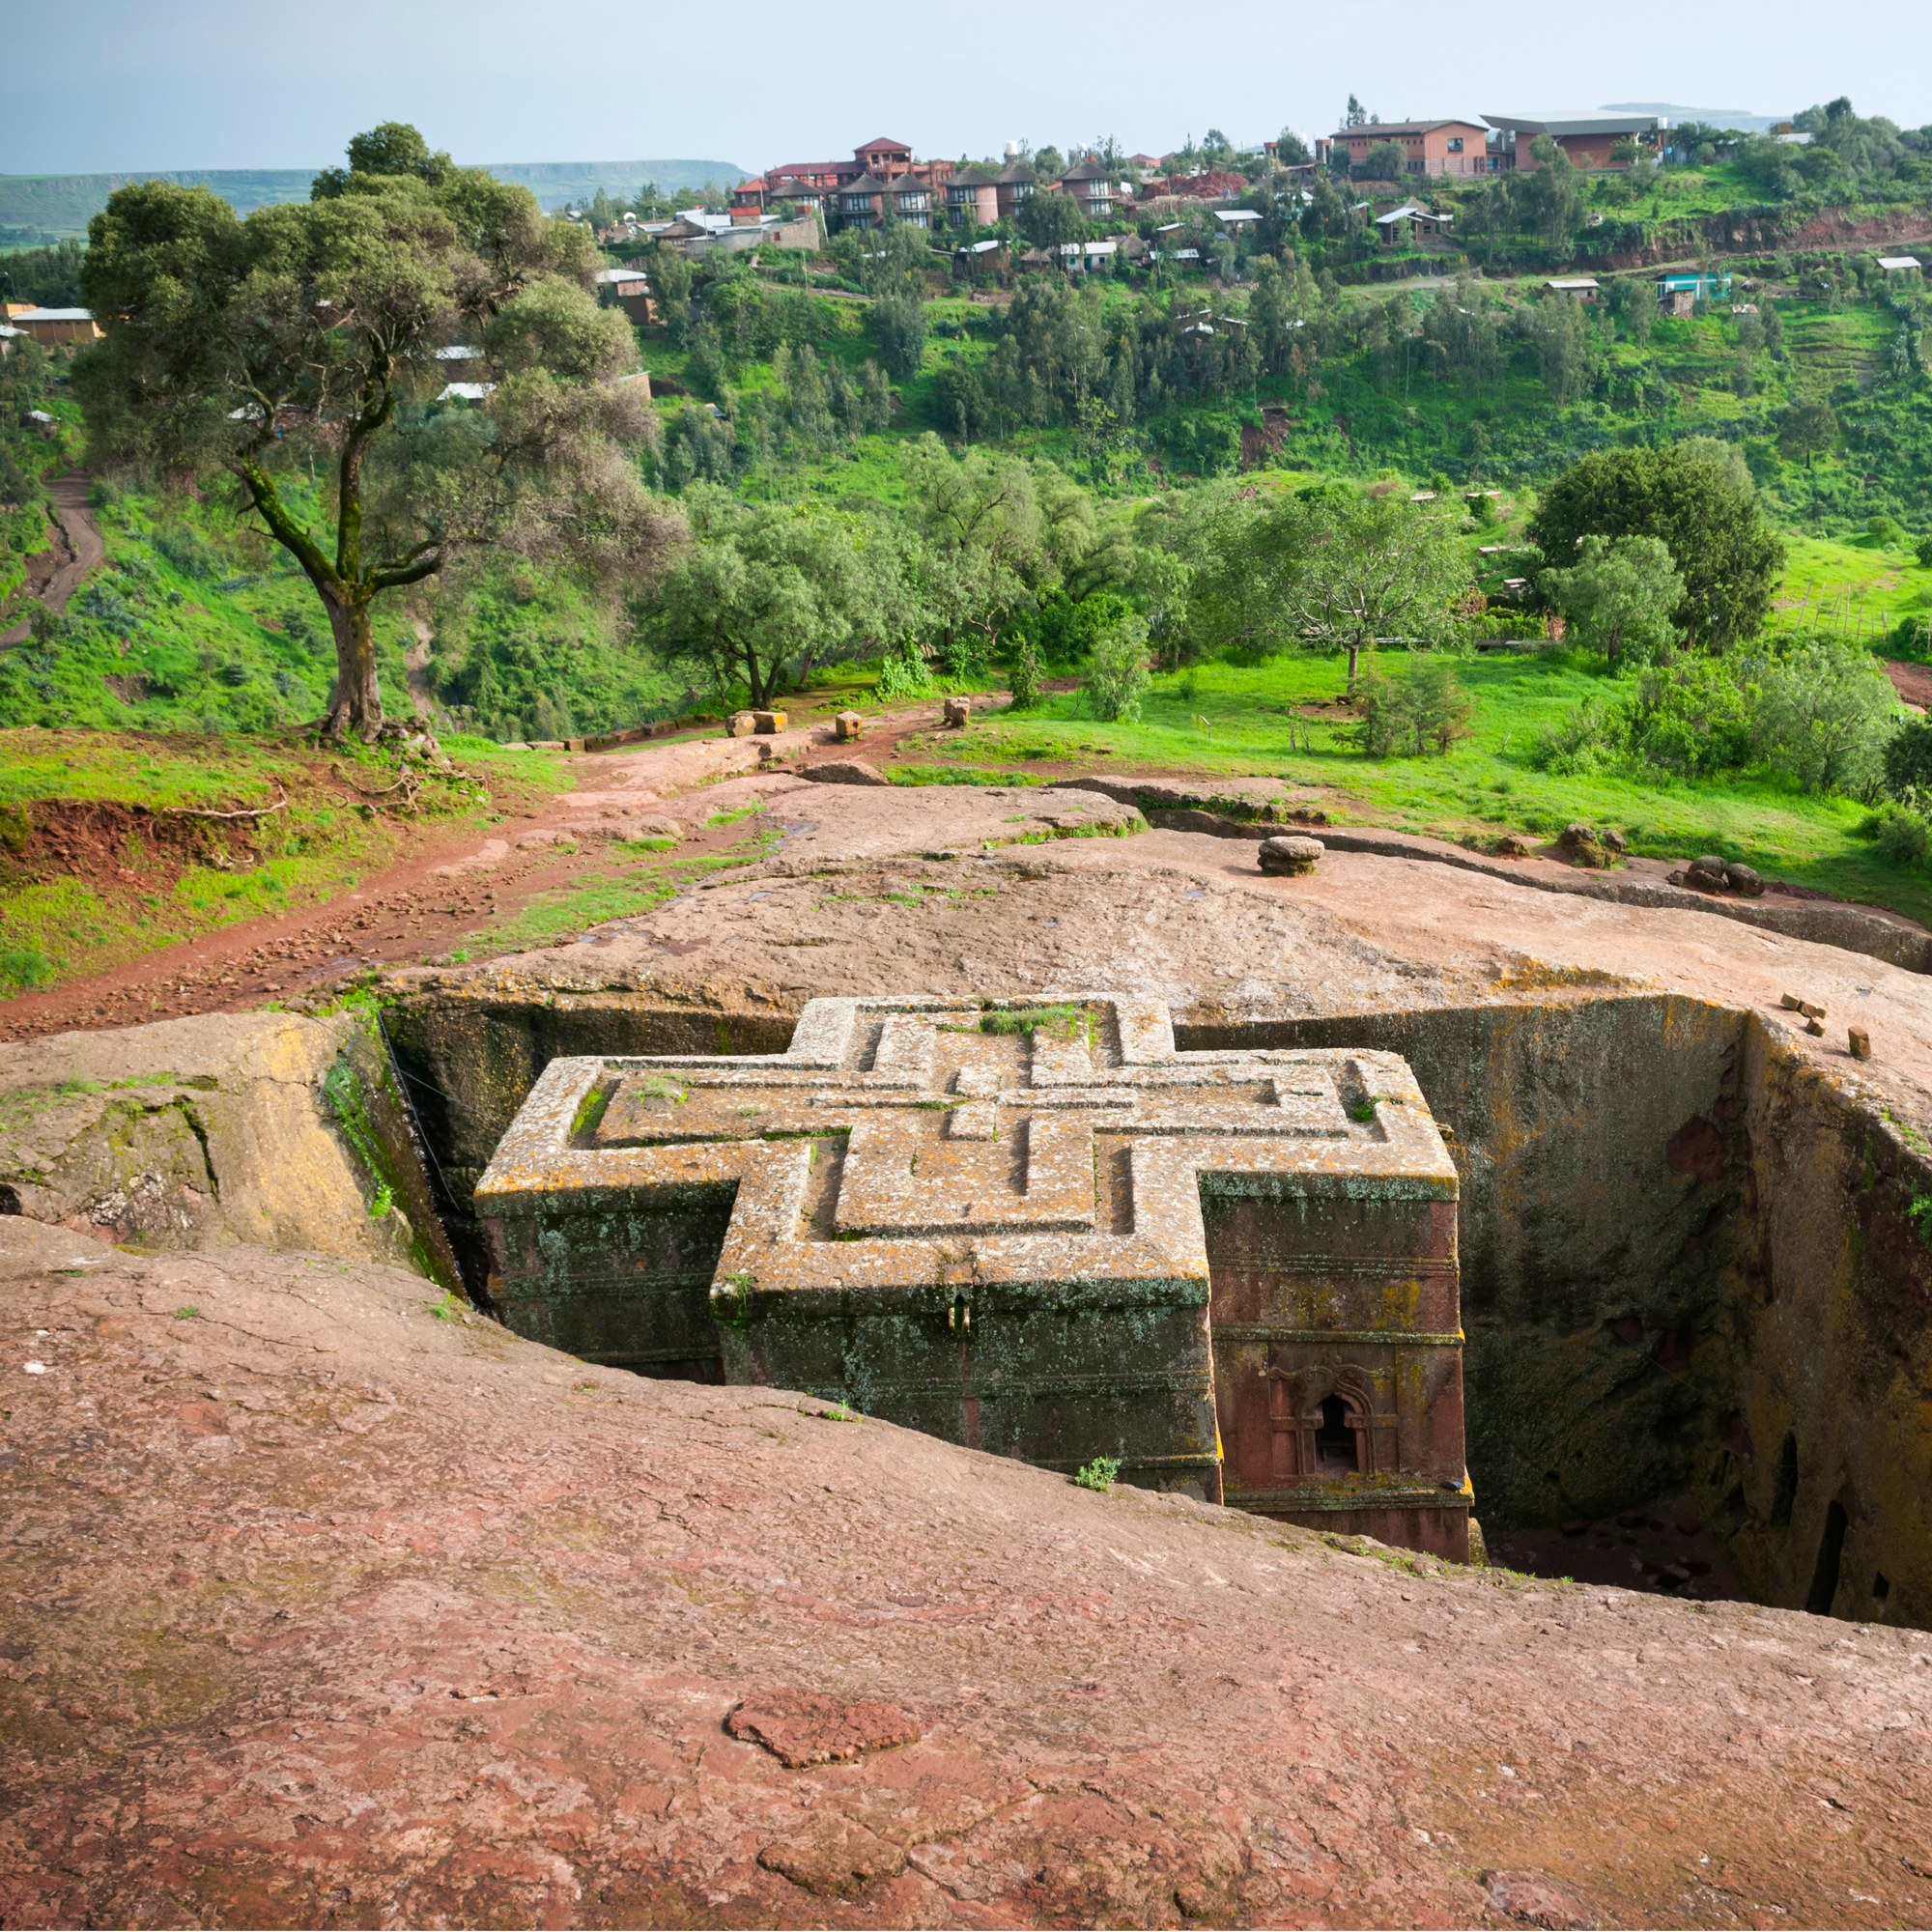 00-promo-image-lalibela-ethiopia-is-the-next-machu-picchu.jpg